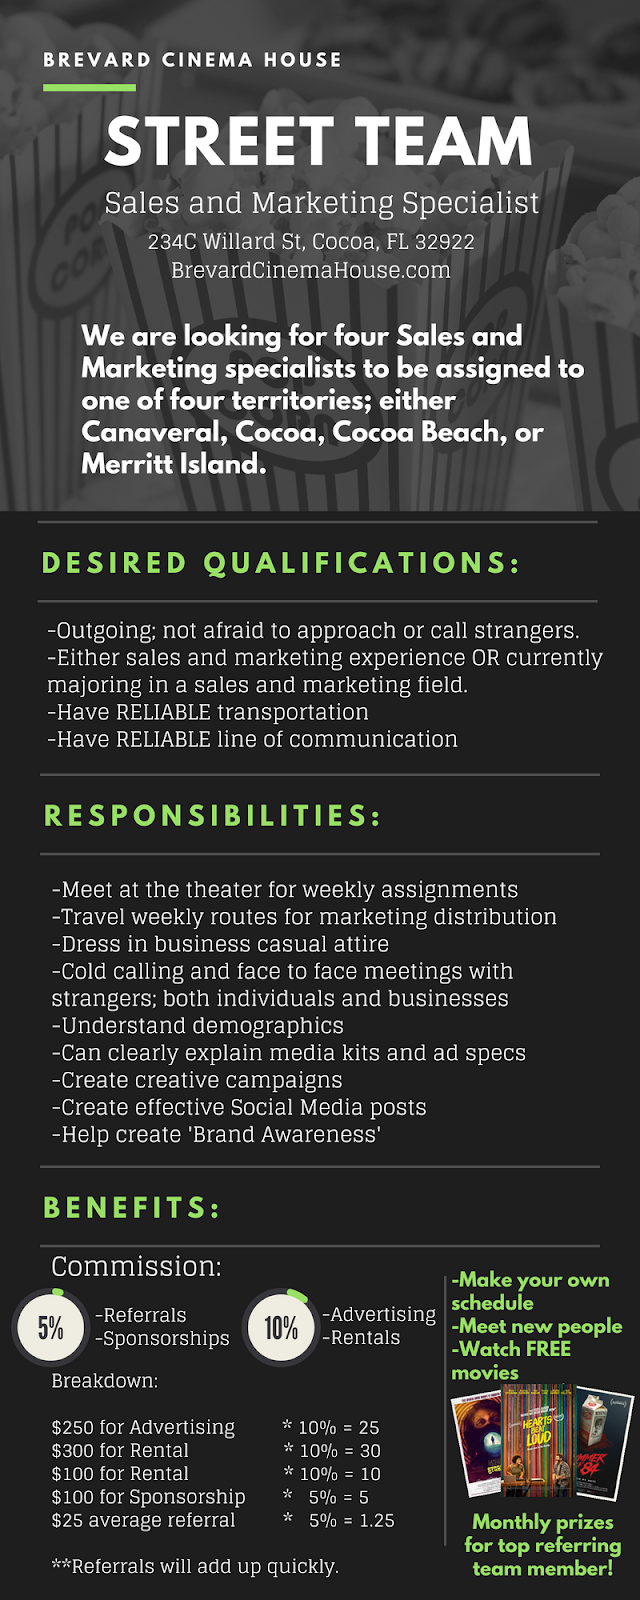 movie theater hiring sales and marketing specialist